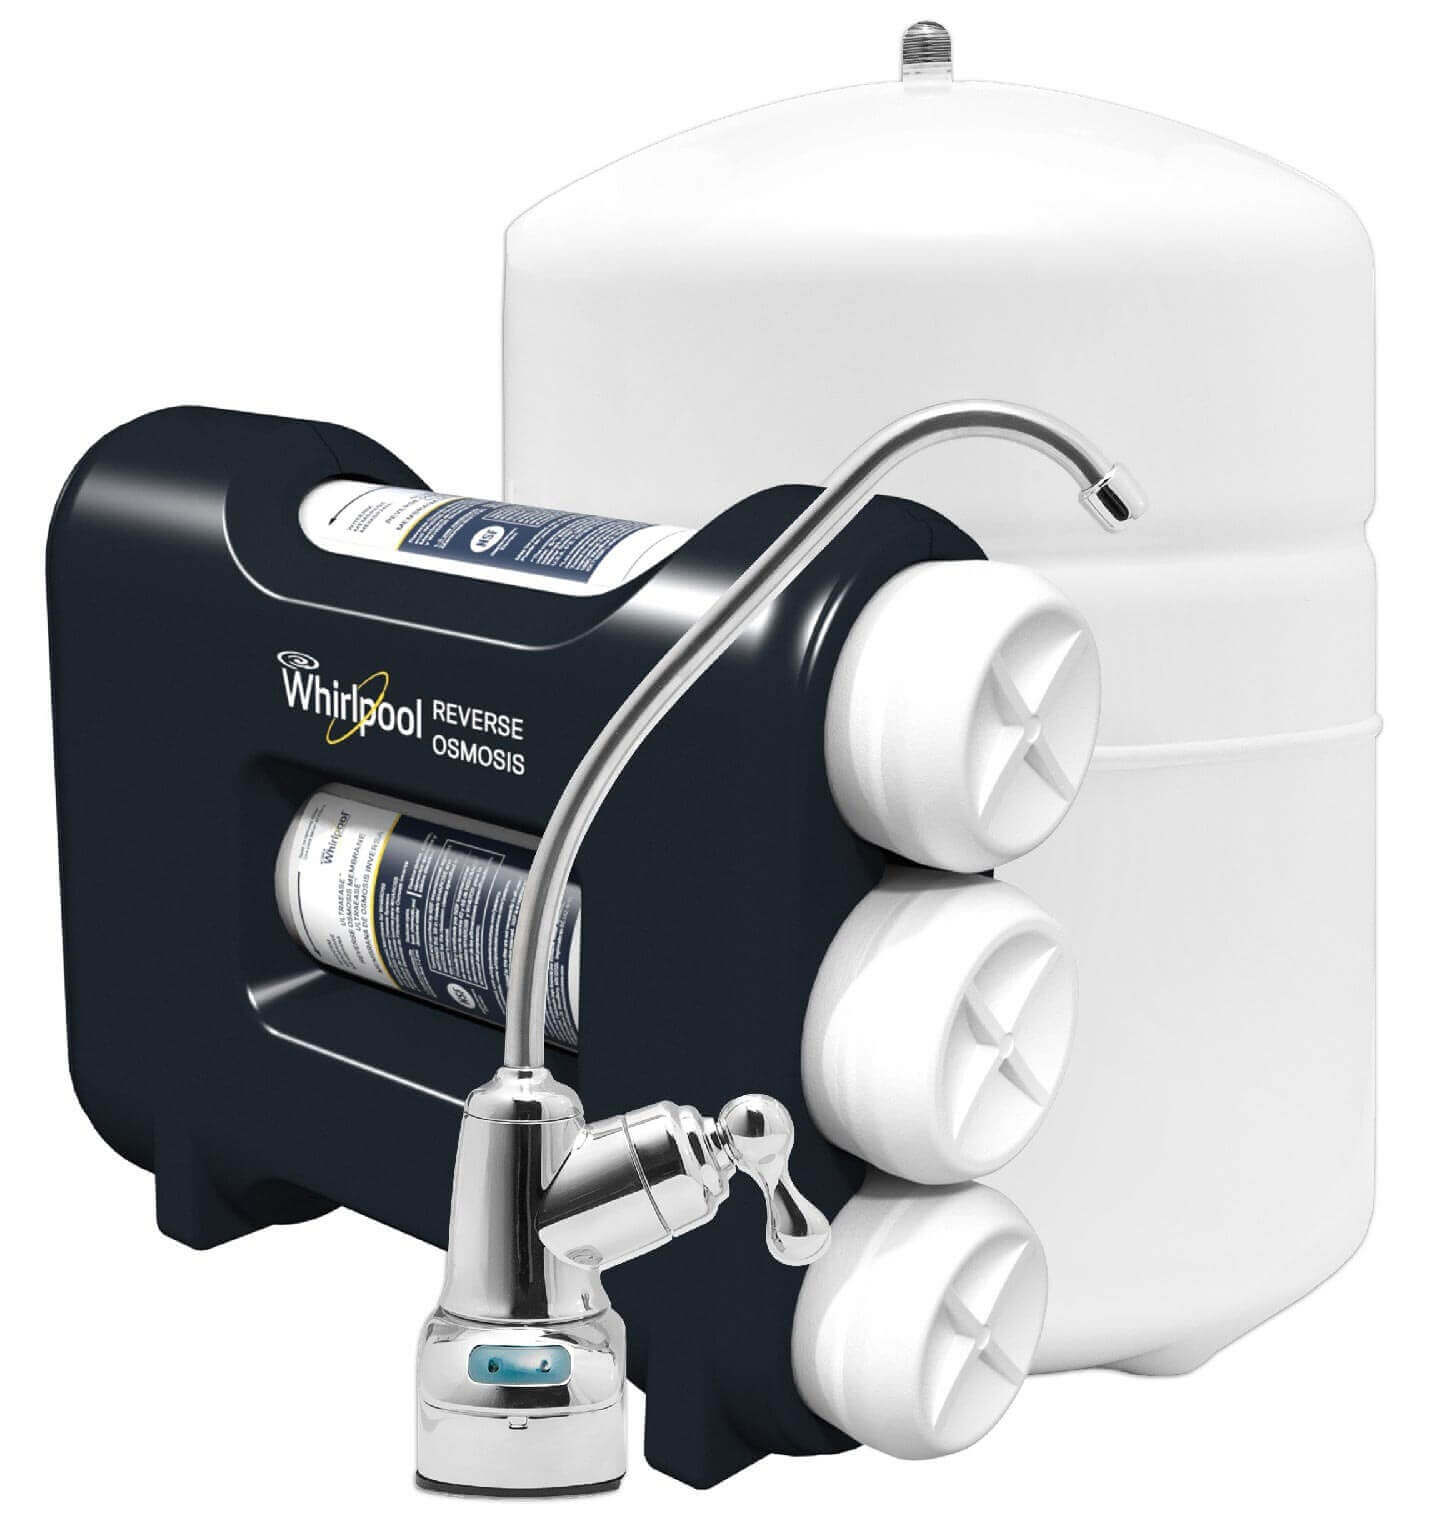 hight resolution of new ultraease reverse osmosis filtration system